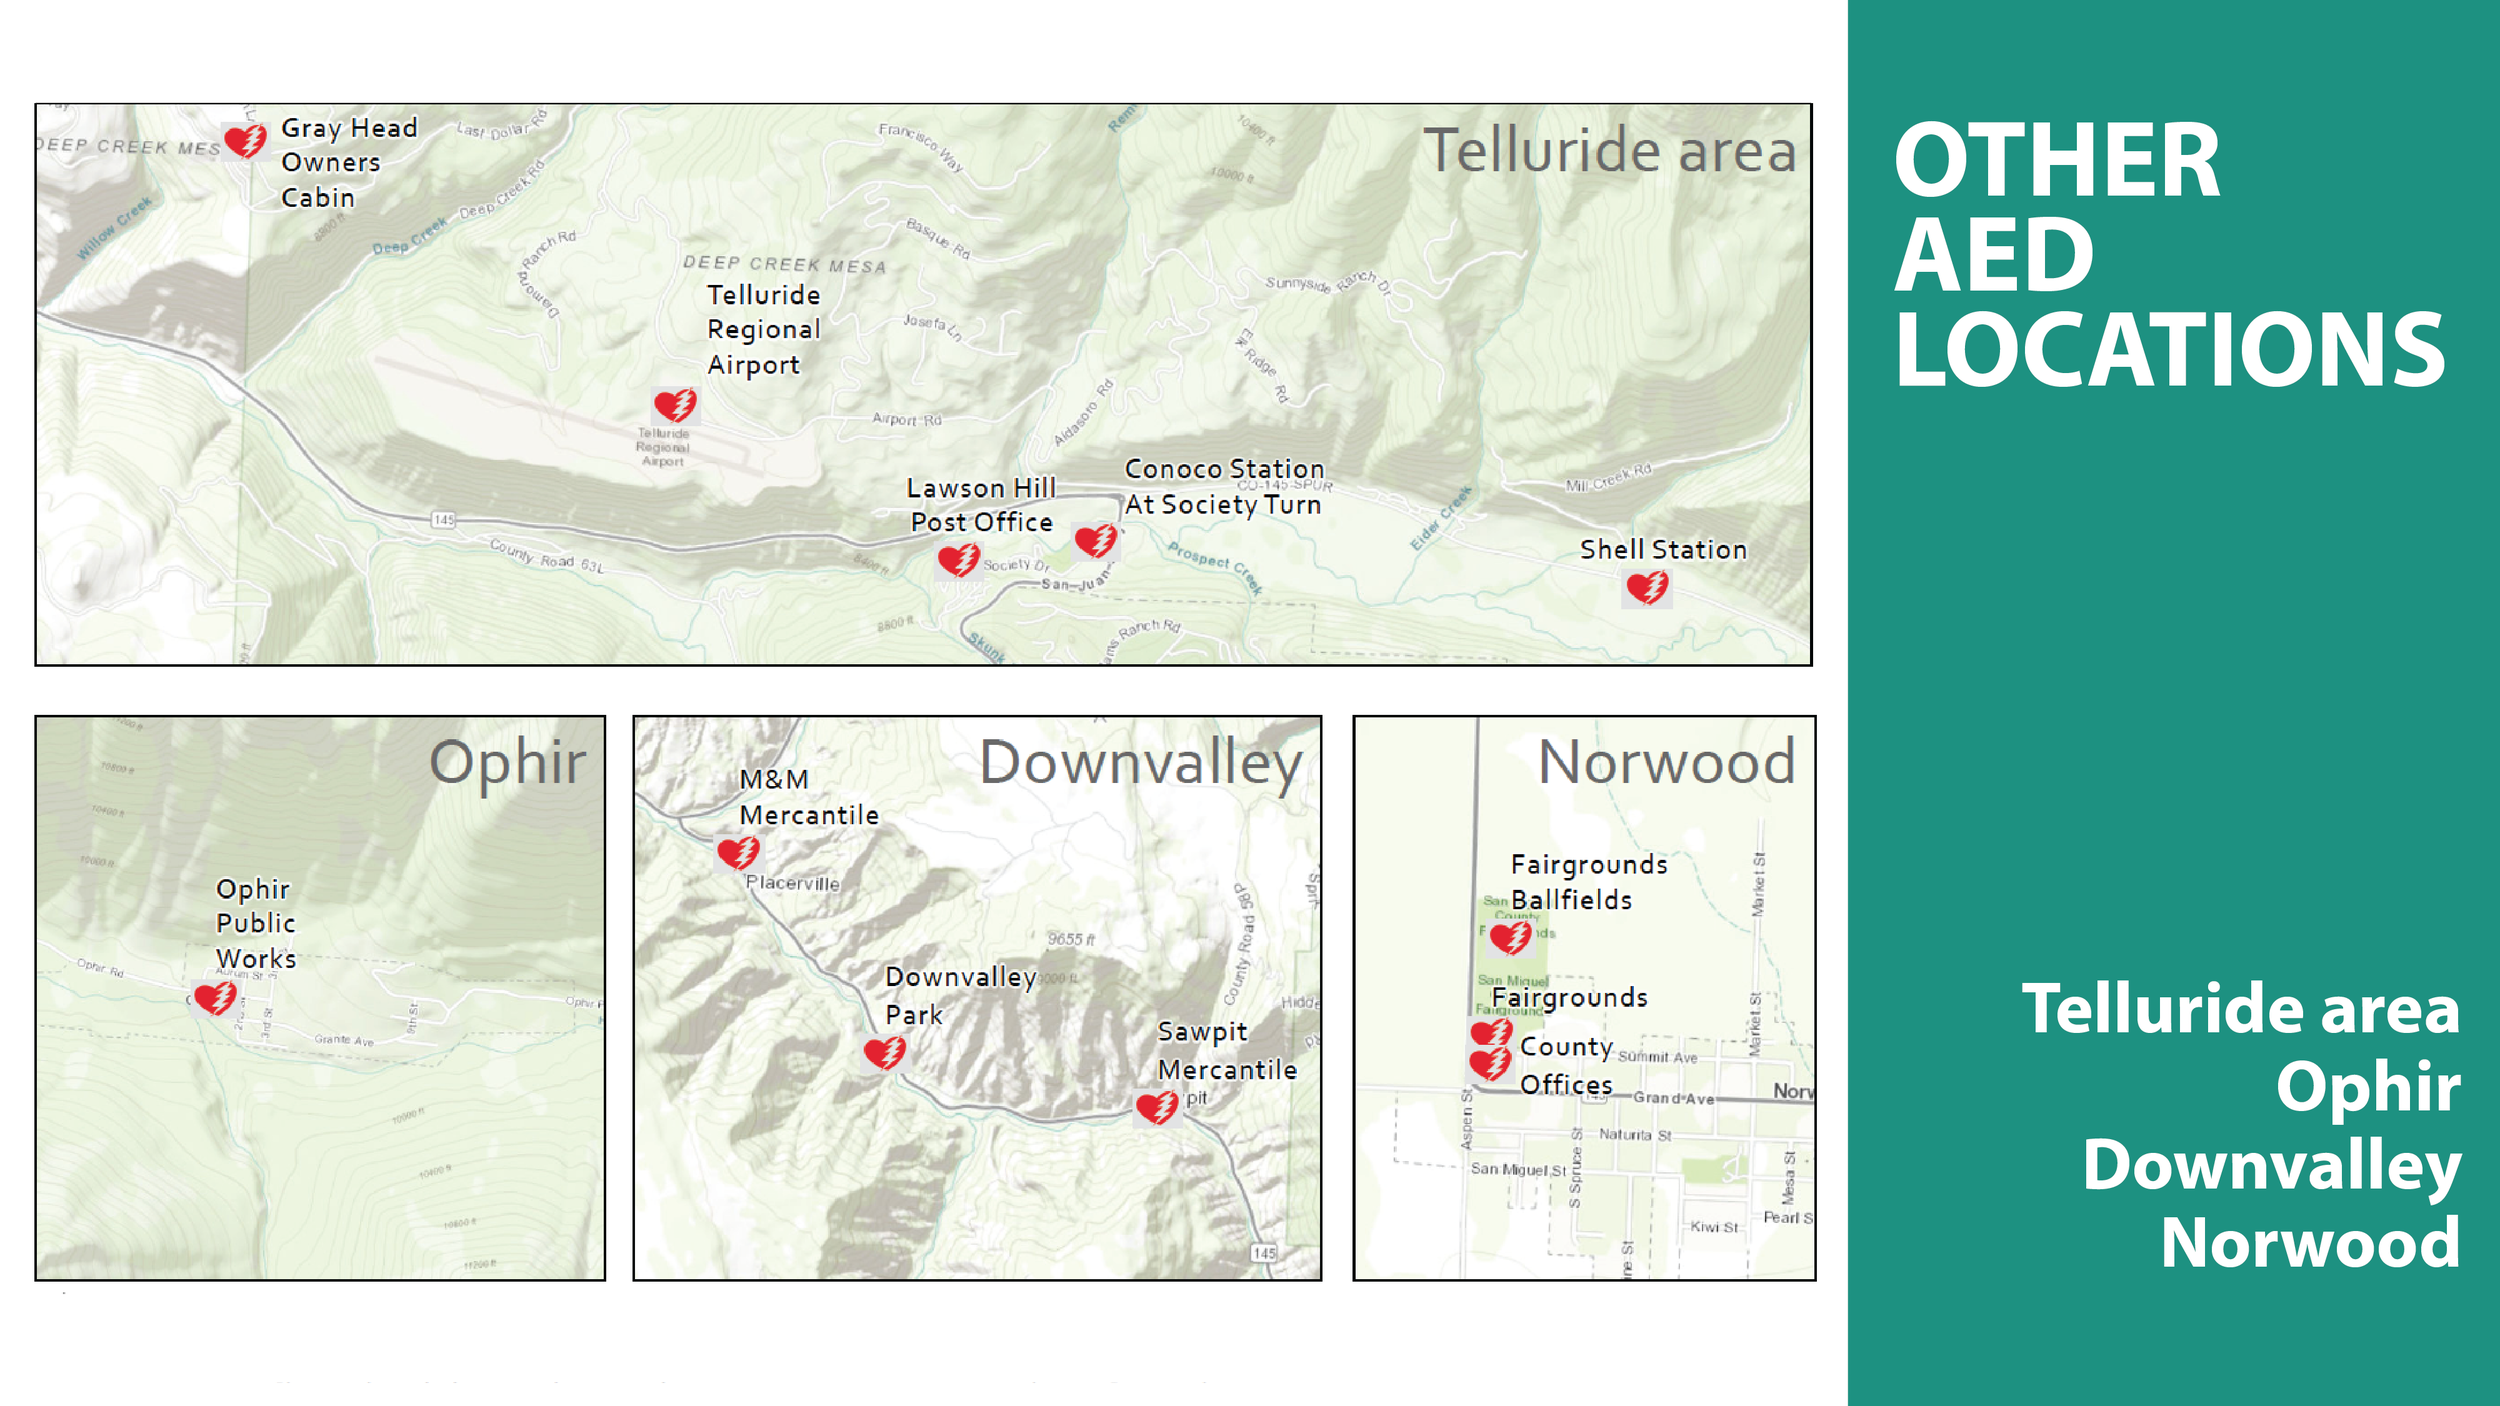 digital-sign-AED-telluride-area-01.png